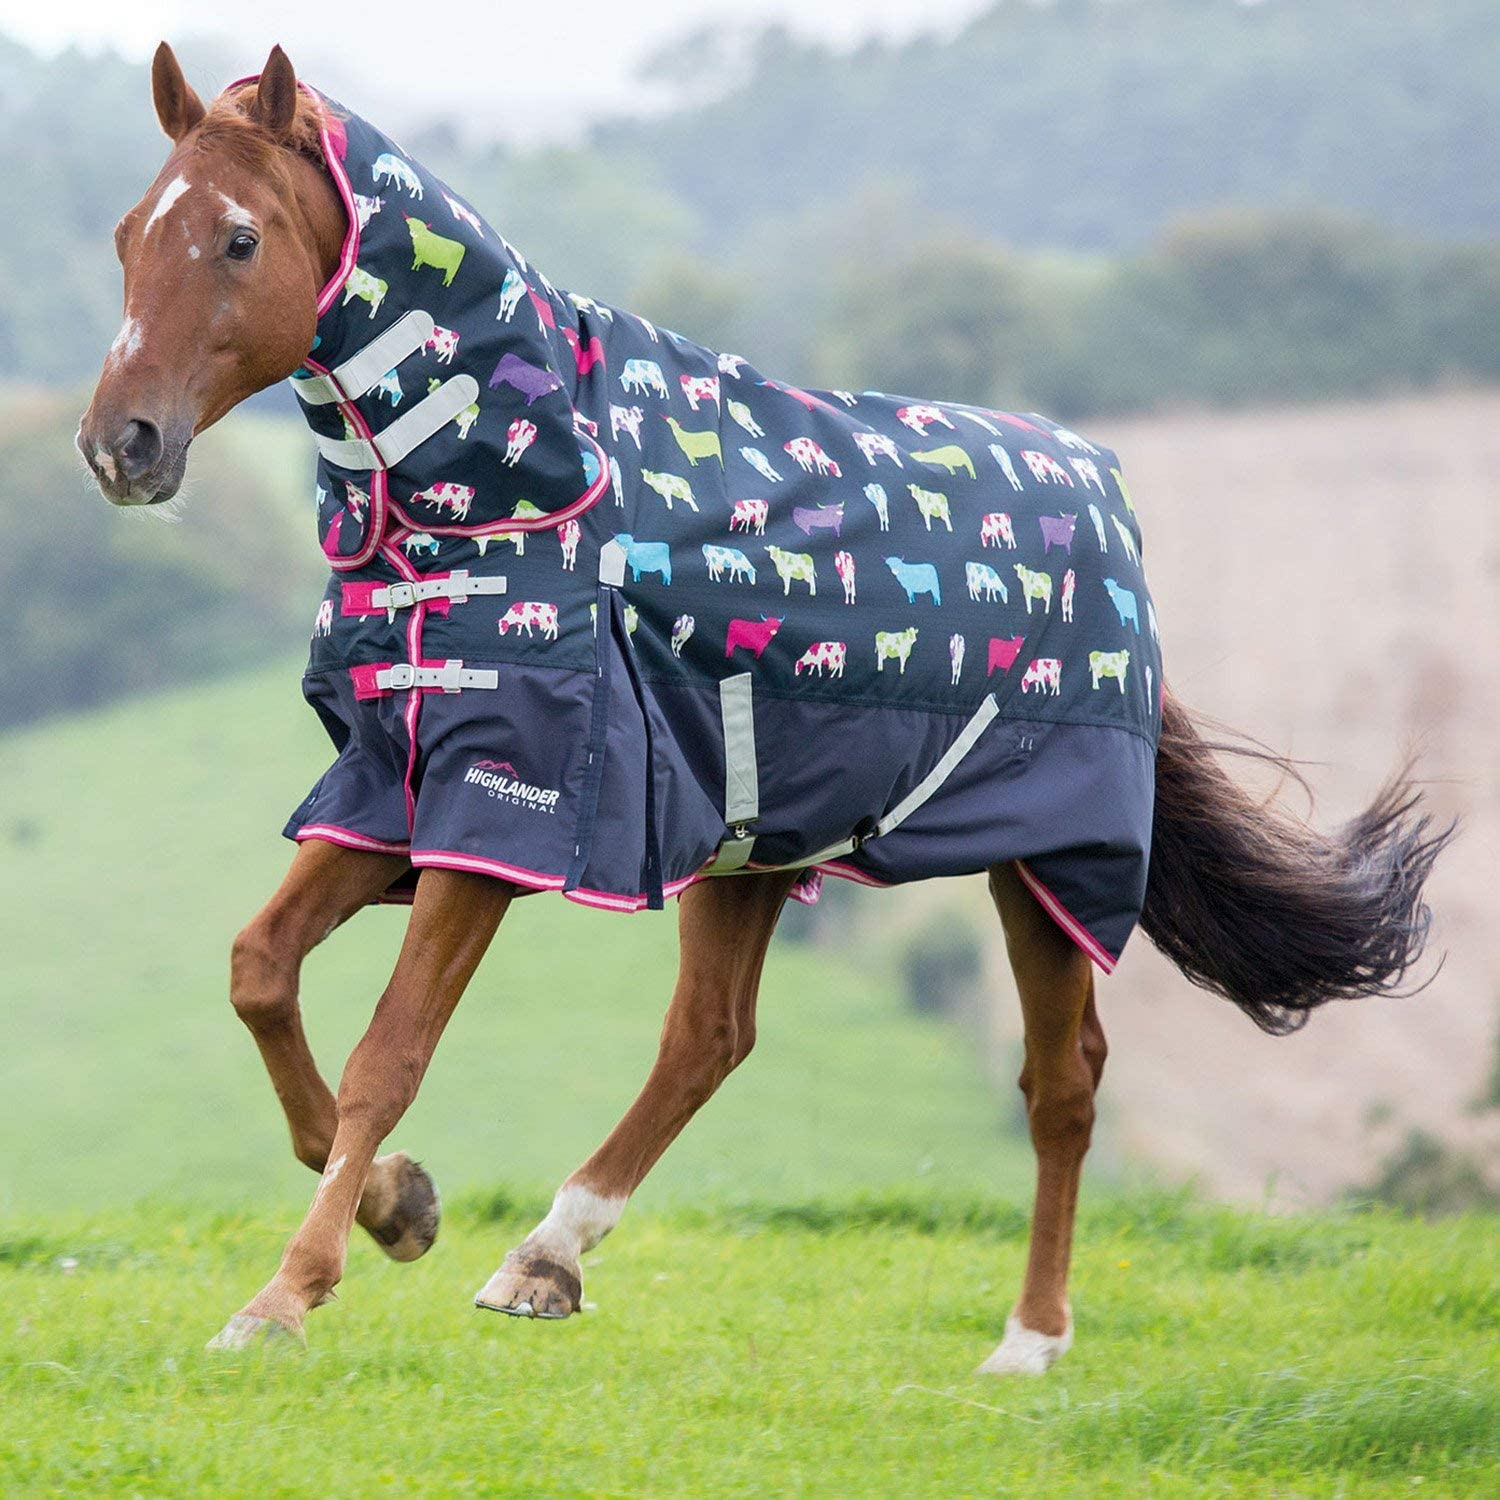 Shires Highlander 200g Combo Horse Turnout Rug, in Cow Print 57, Cowprt